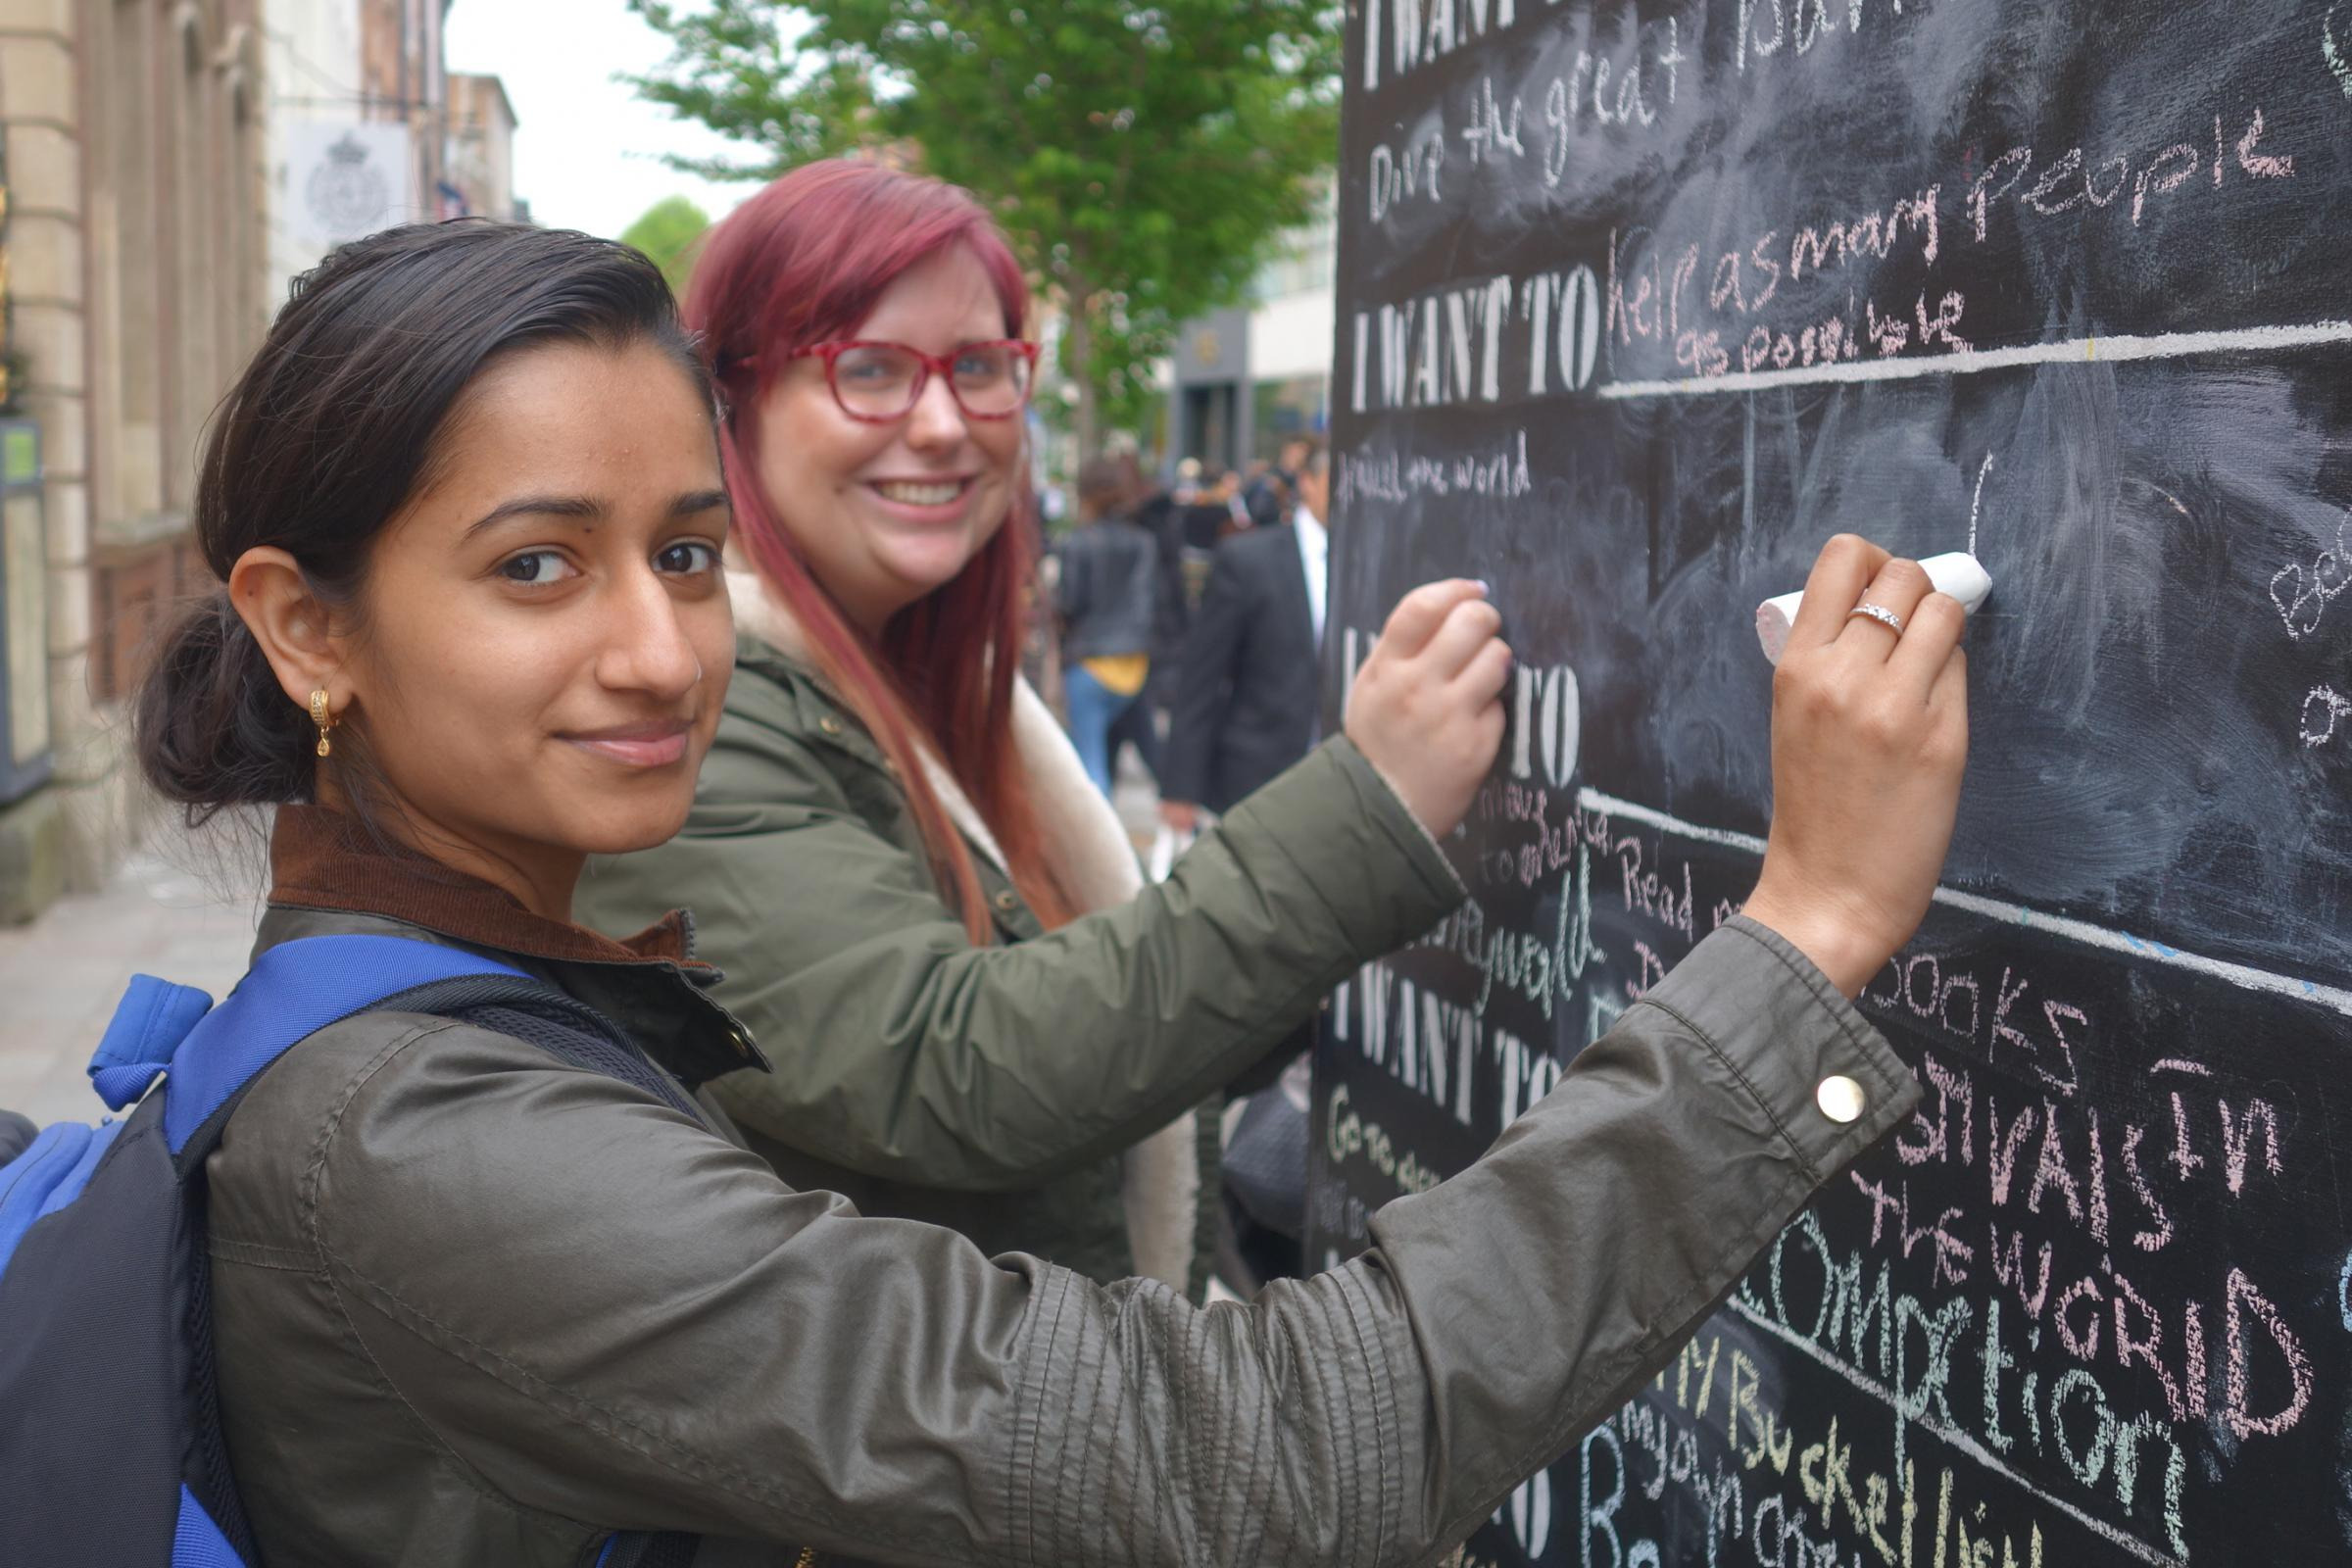 CHALK: Members of the public writing on the wall